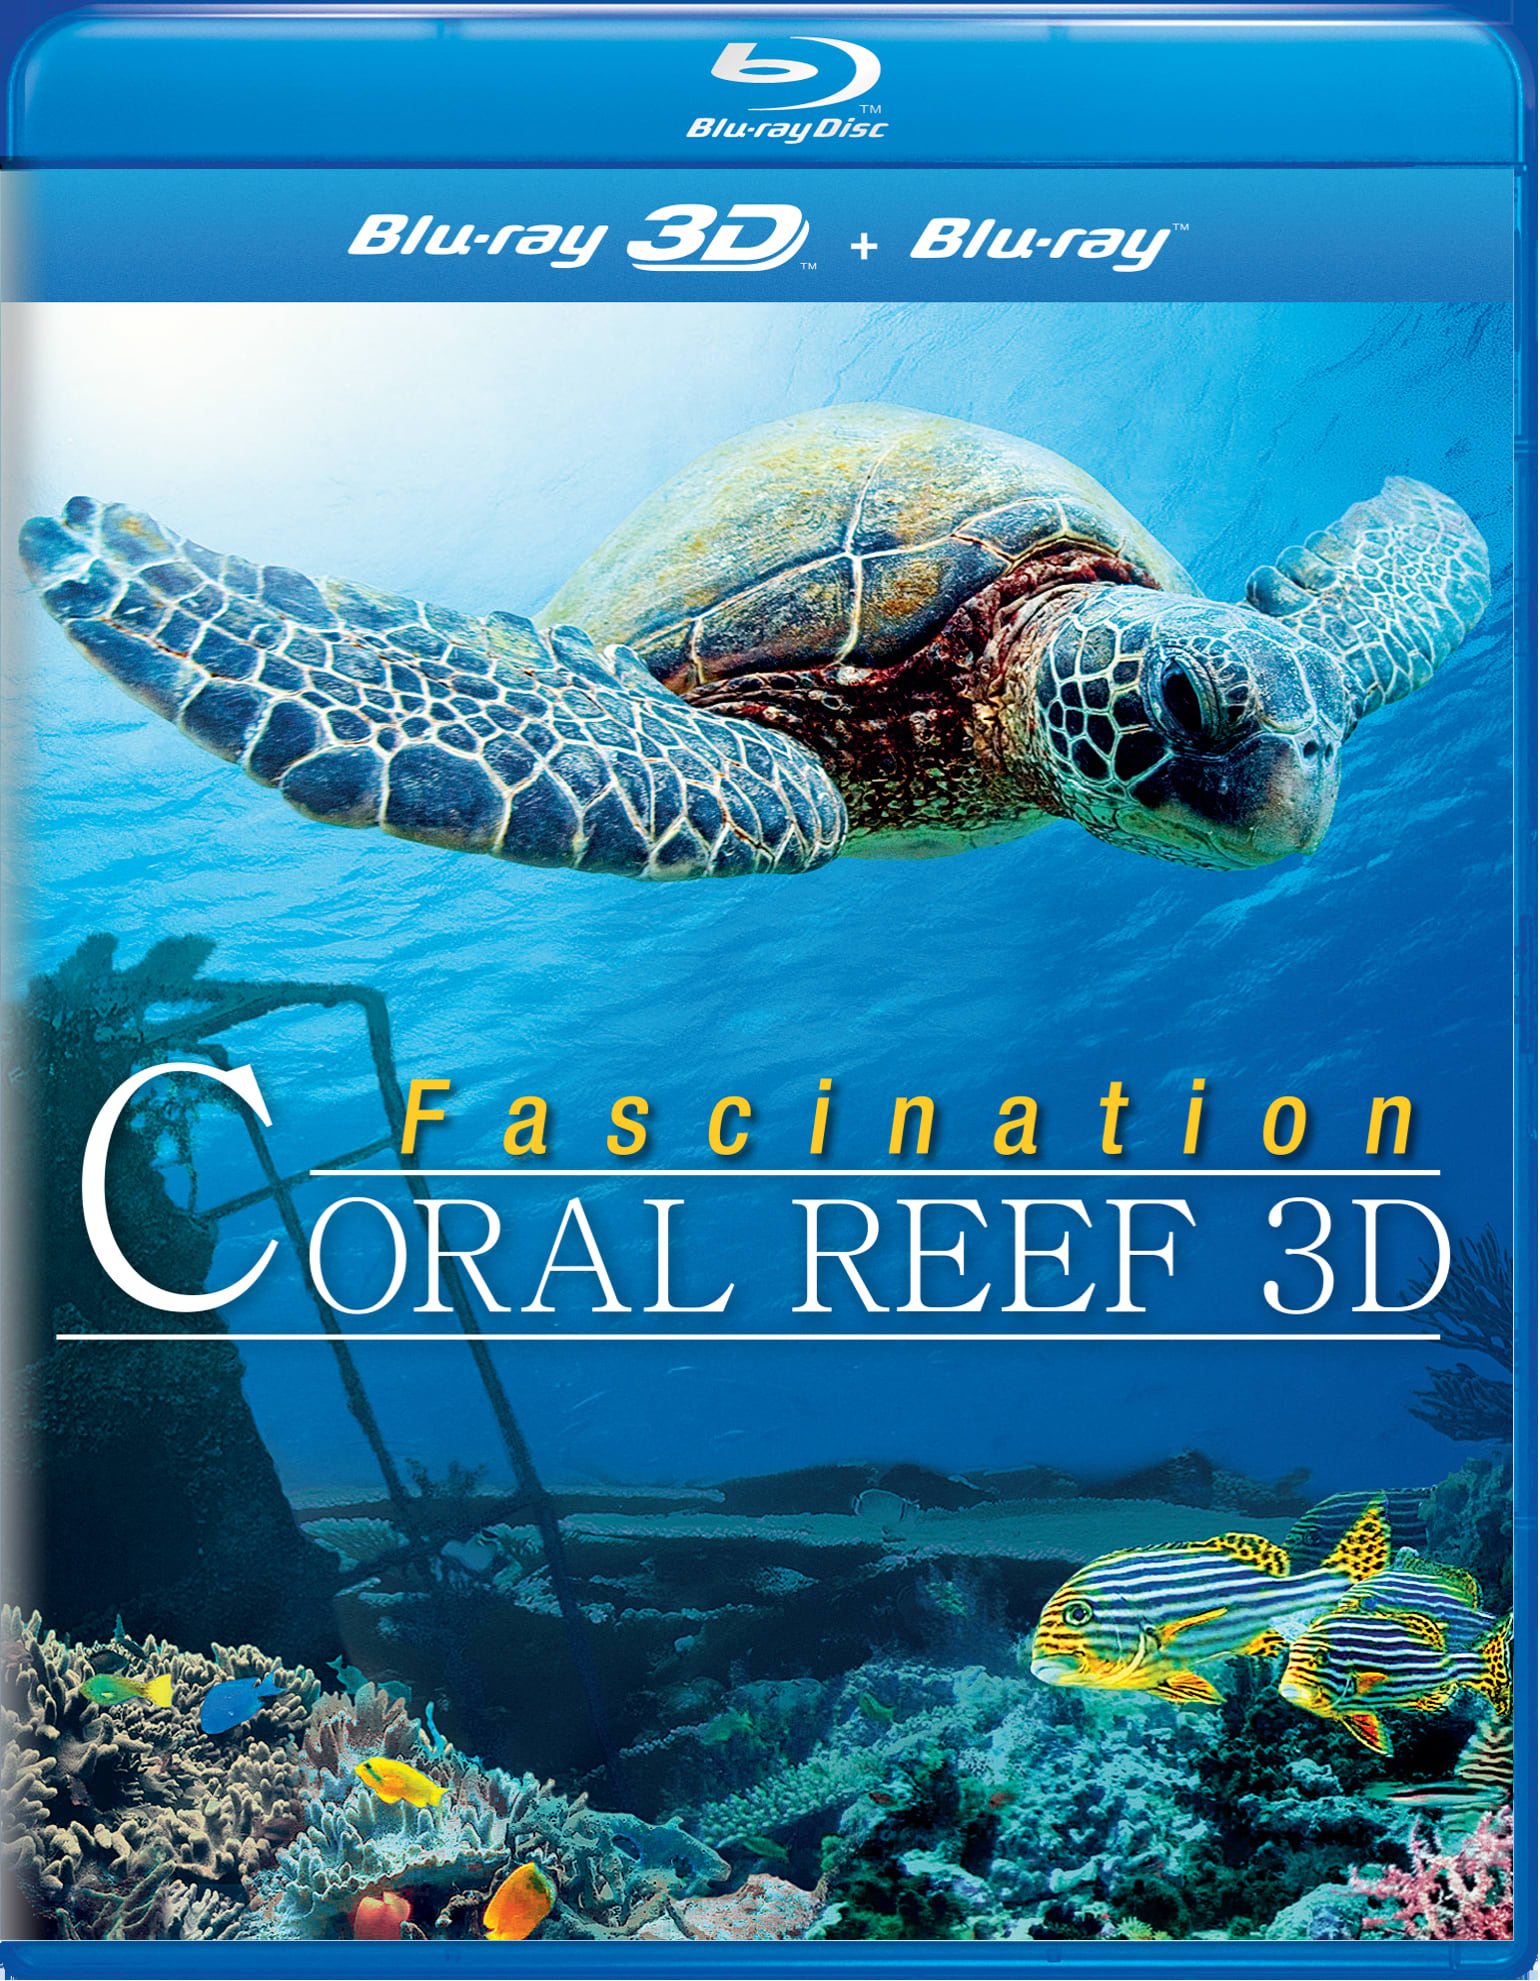 Fascination: Coral Reef 3D [Blu-ray]